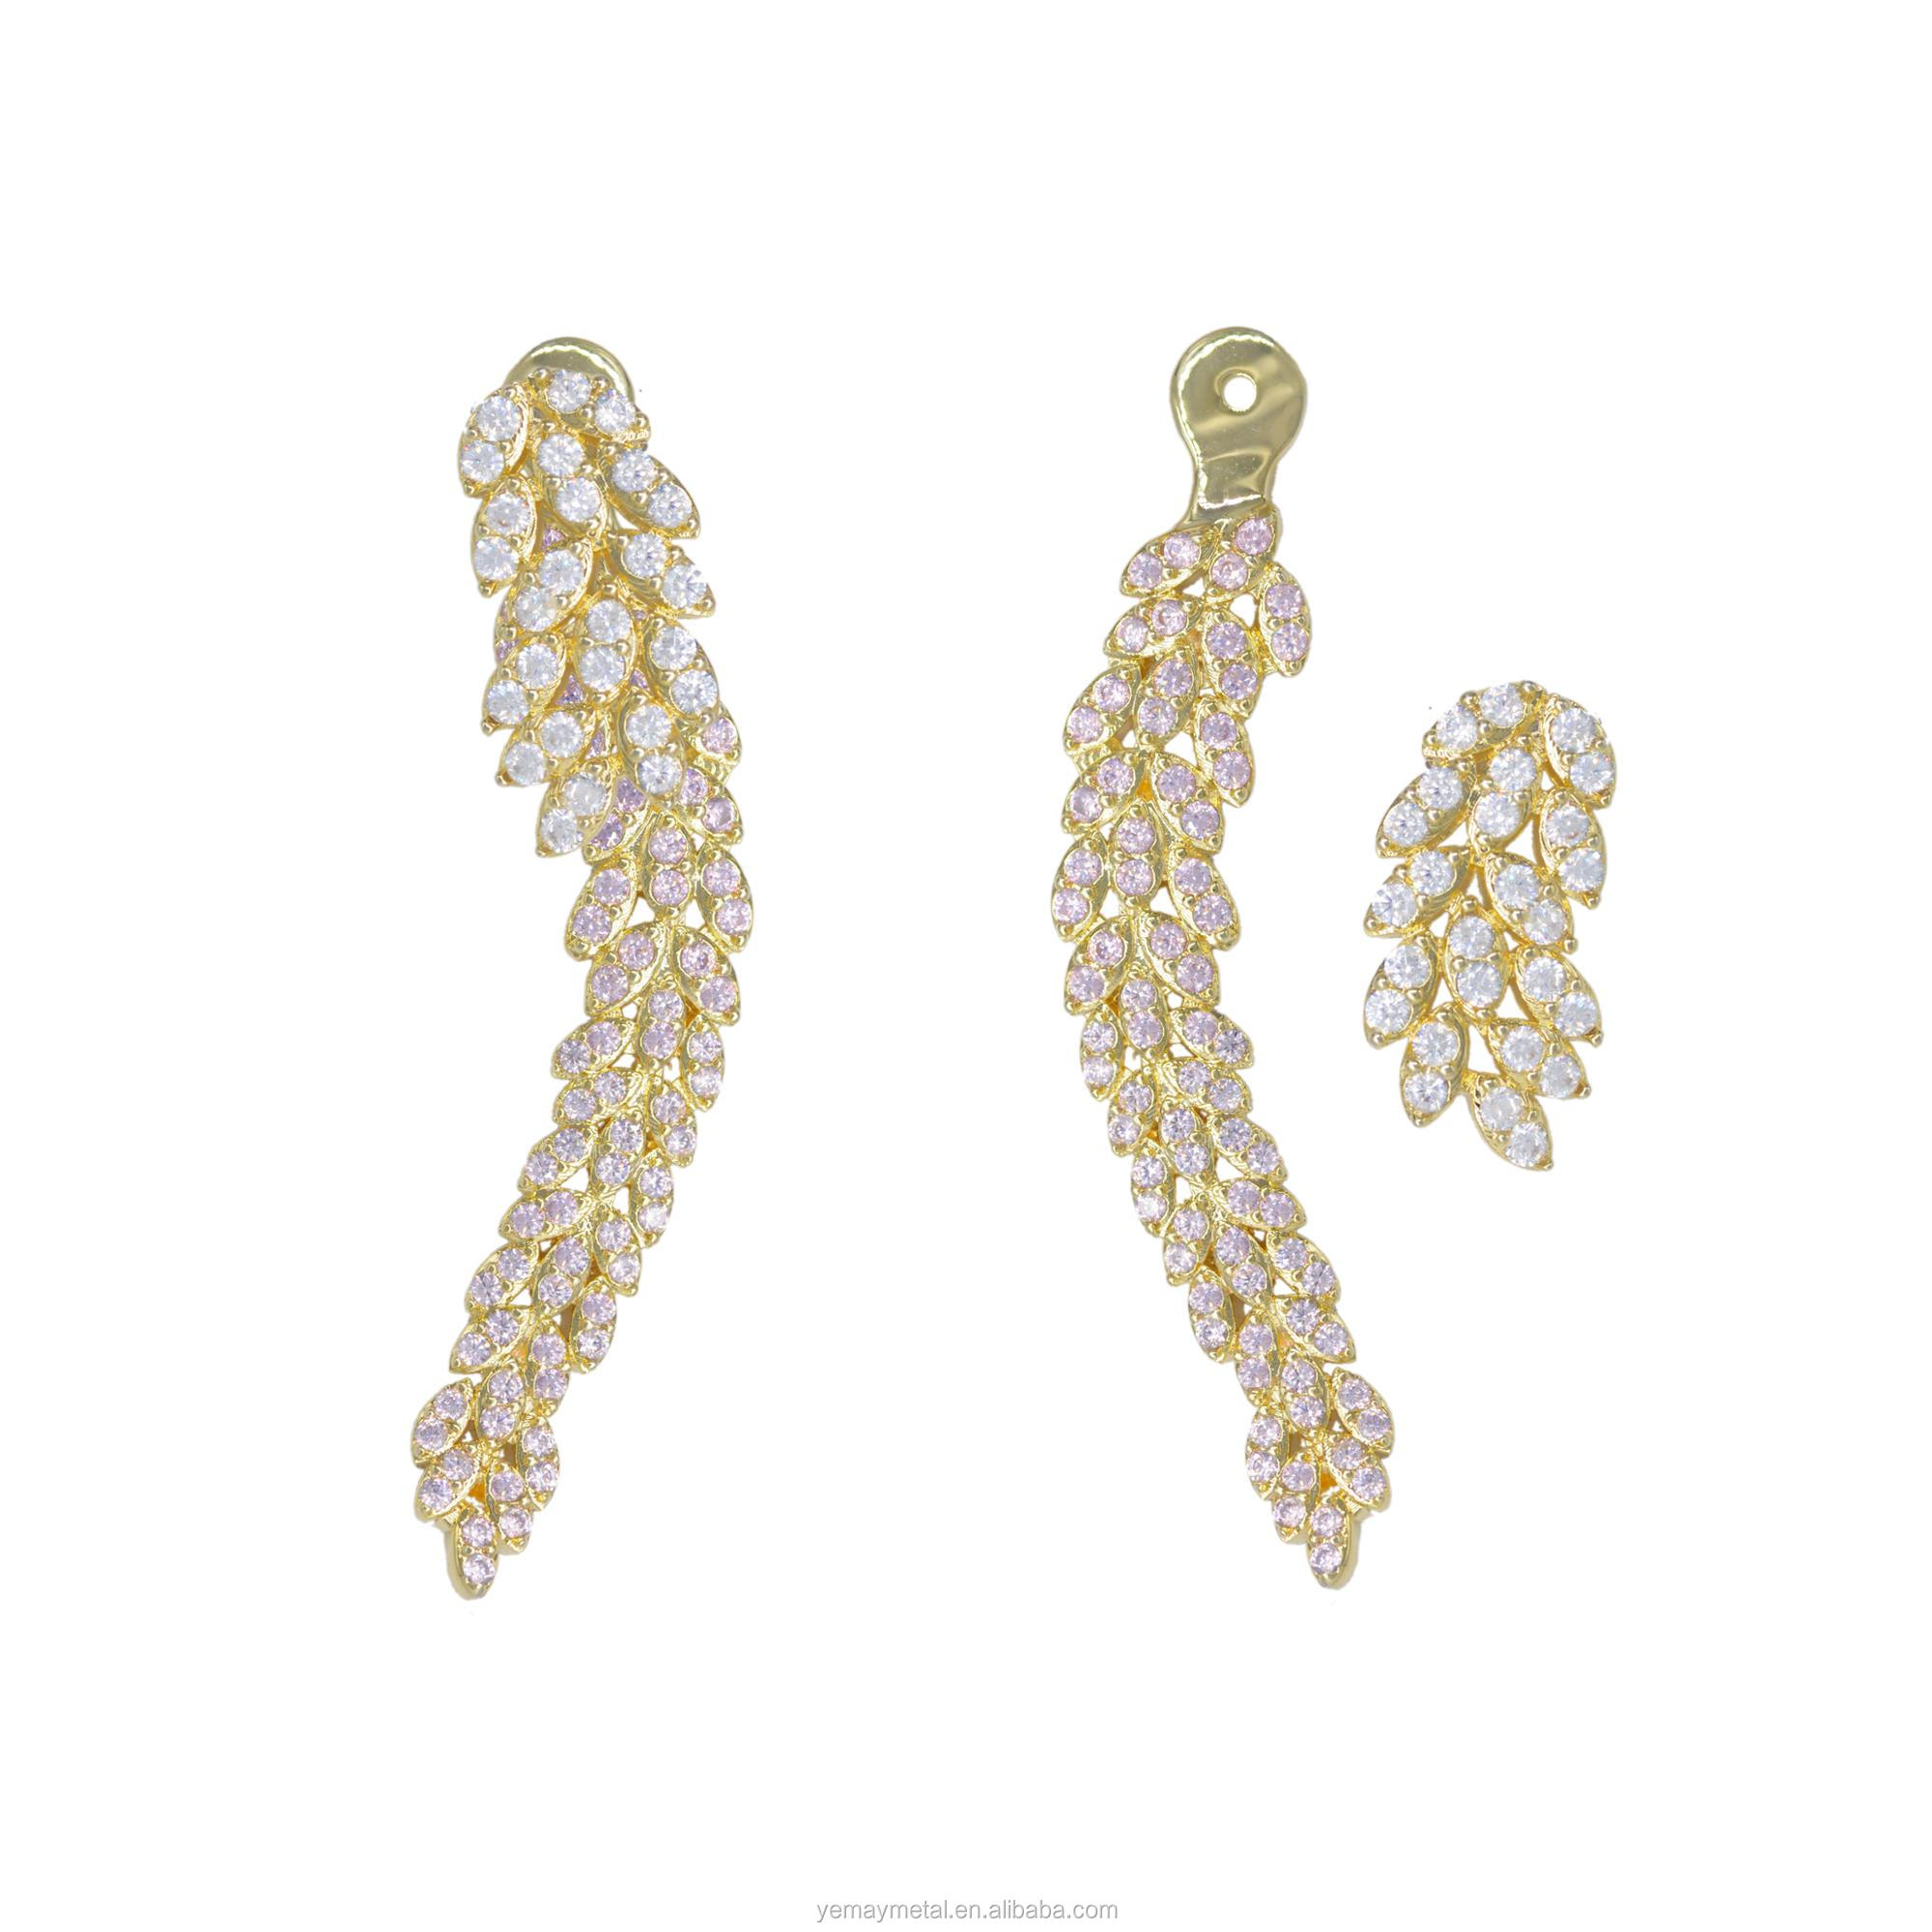 by green with large marni operandi earrings loading moda asymmetrical asymmetric in strass